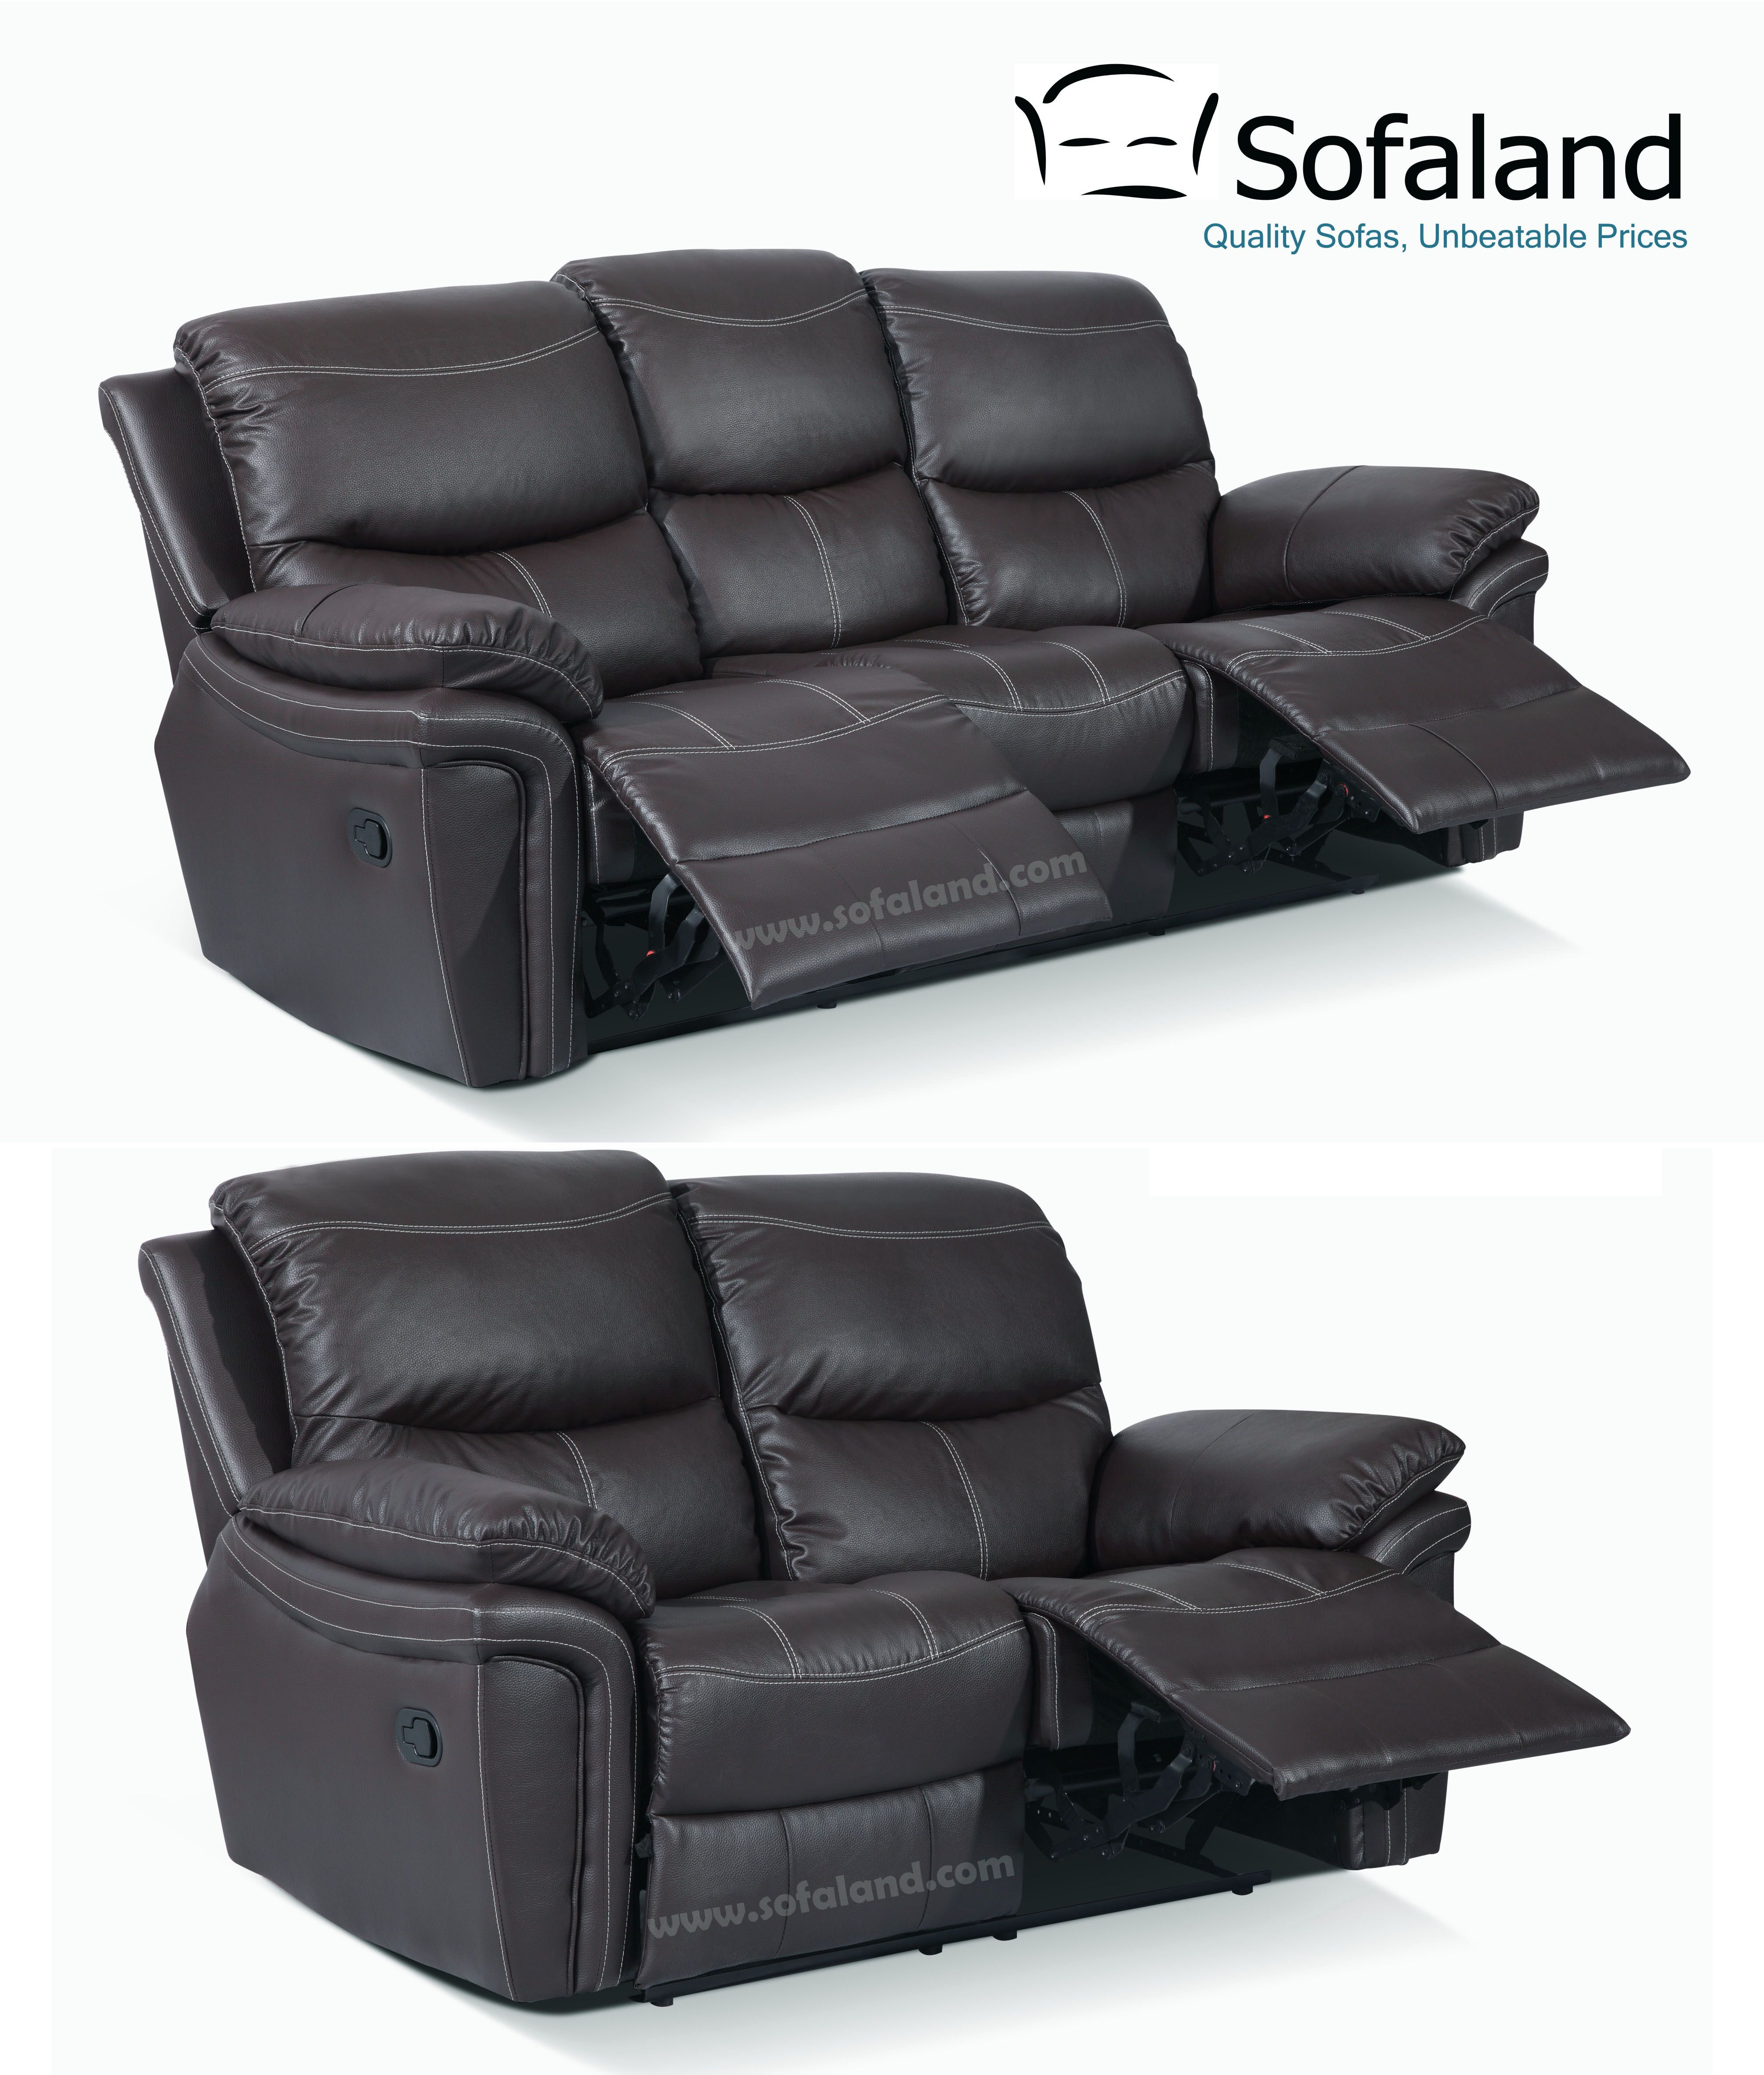 Sofaland Is A Top Leather Sofa Provider Company In Uk And Global